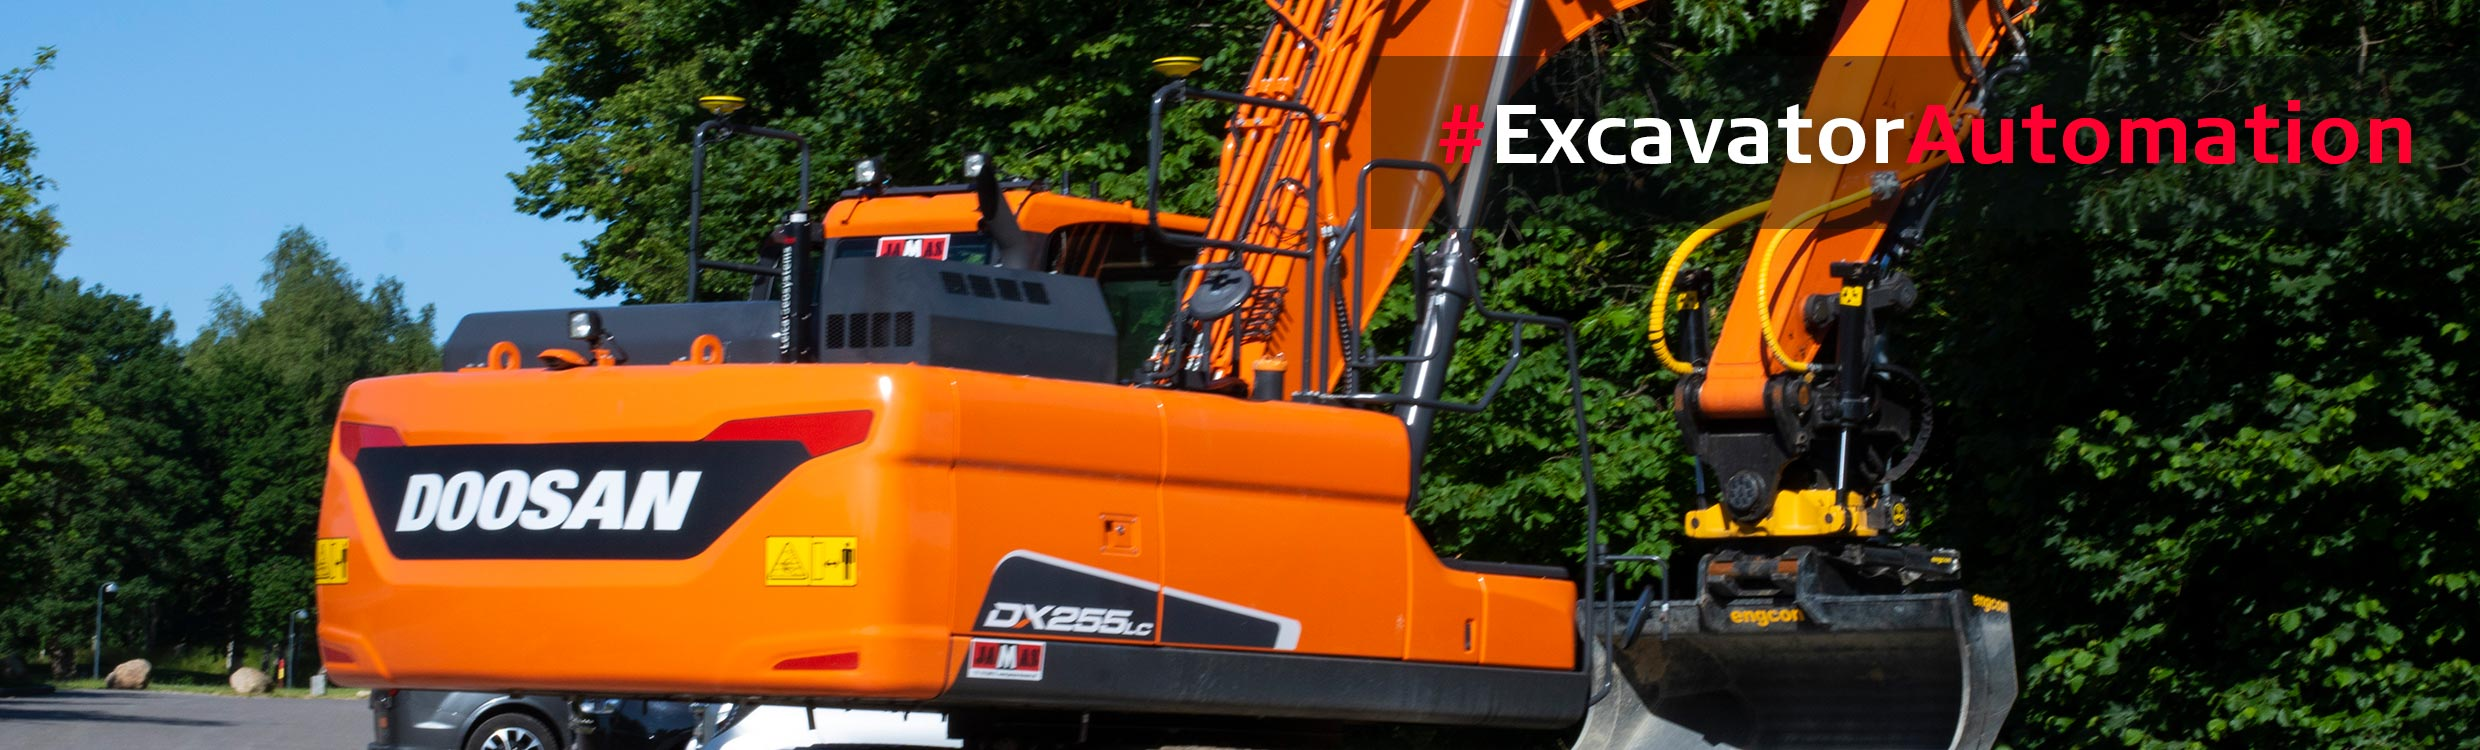 Semi-automatic excavator for Doosan